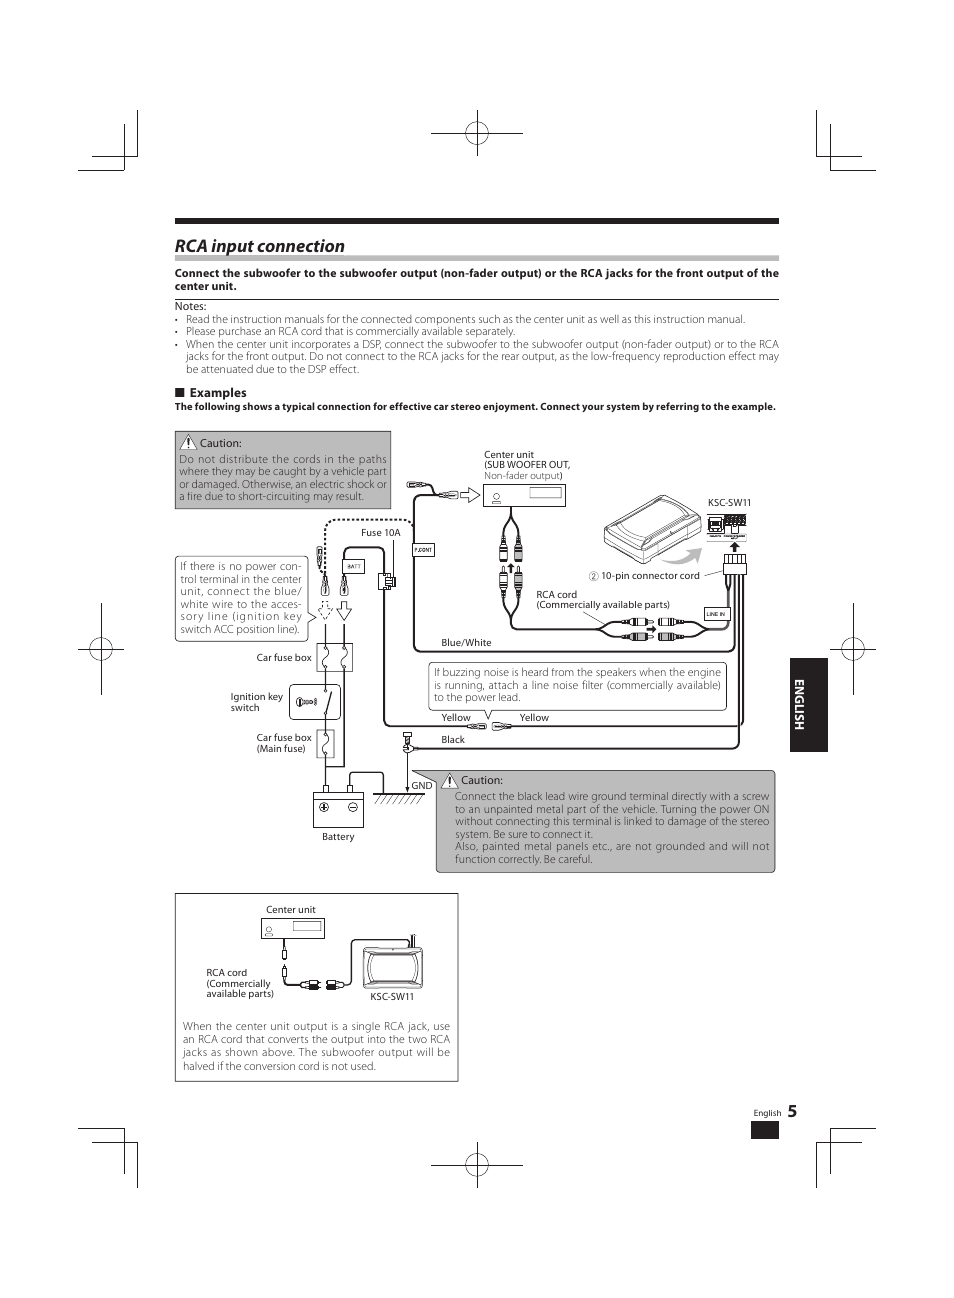 Rca Input Connection P Kenwood Ksc Sw11 User Manual Page 5 9 Fire Fuse Box